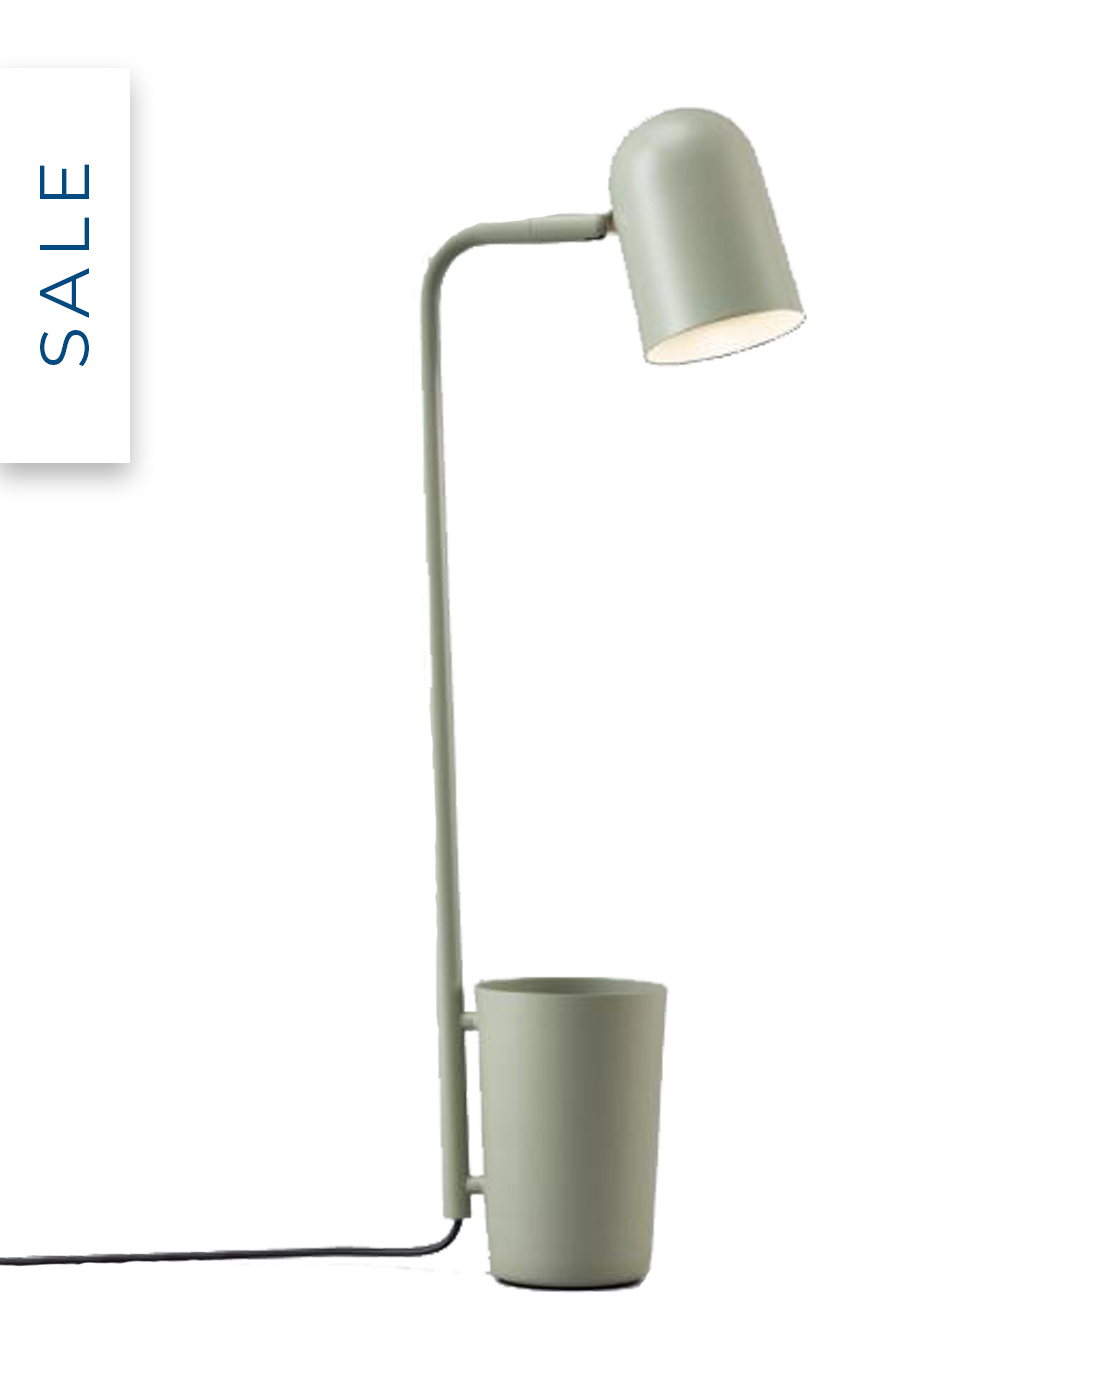 Buddy table light by Northern with 40% off